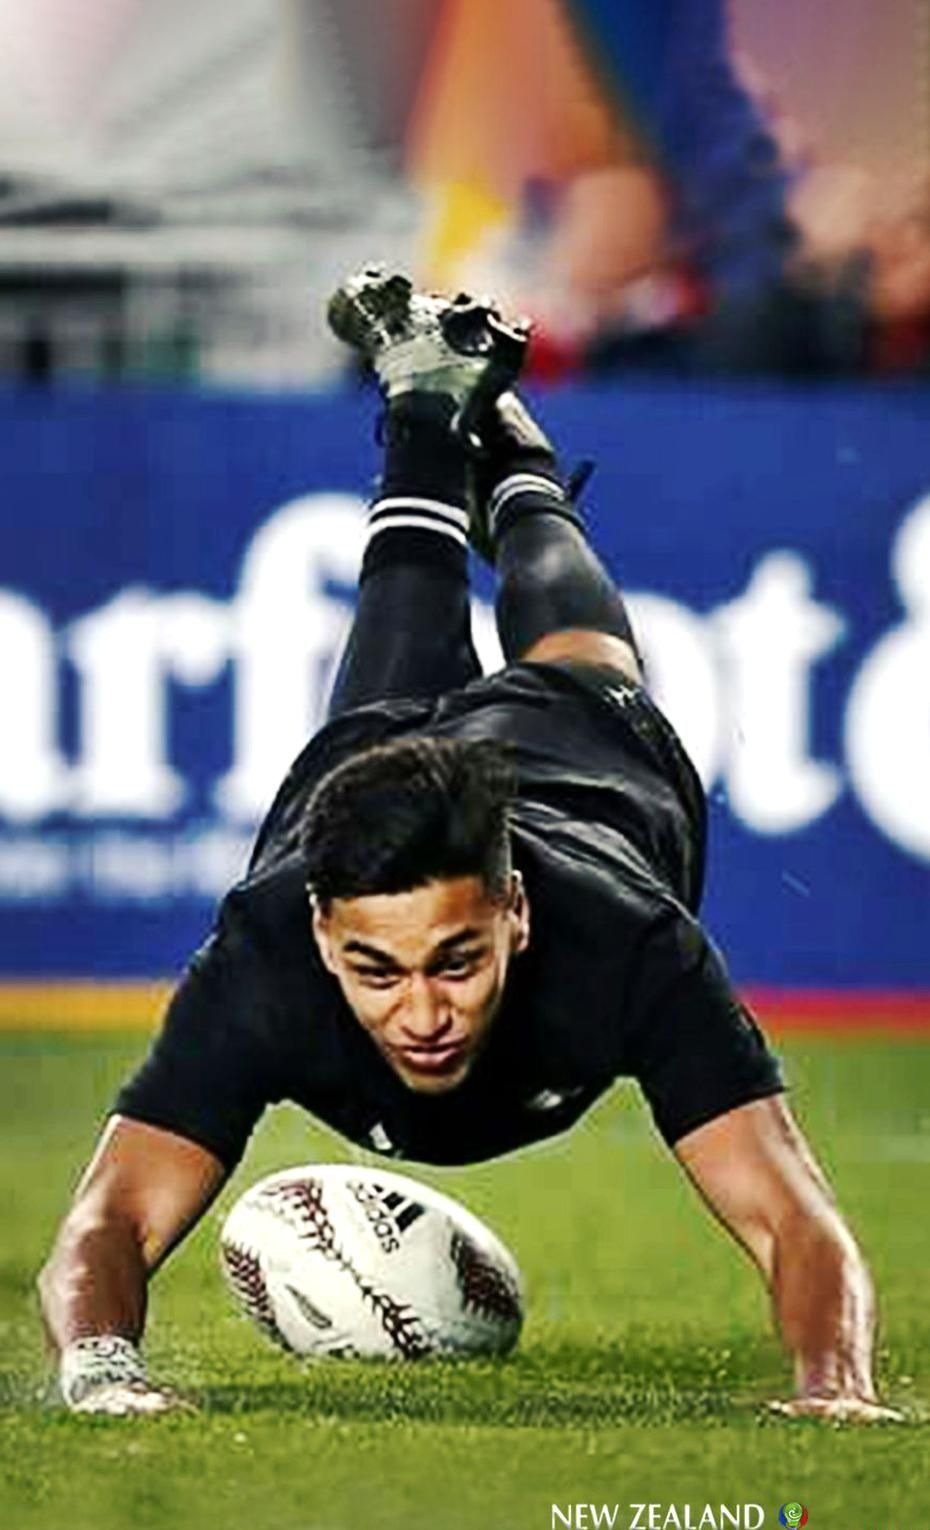 Rieko Ioane Is The Younger Brother Of Mori All Blacks Blues Auckland And New Zealand Sevens Team Mate Akira Ioane In 2020 All Blacks Rugby Nz All Blacks Rugby Players